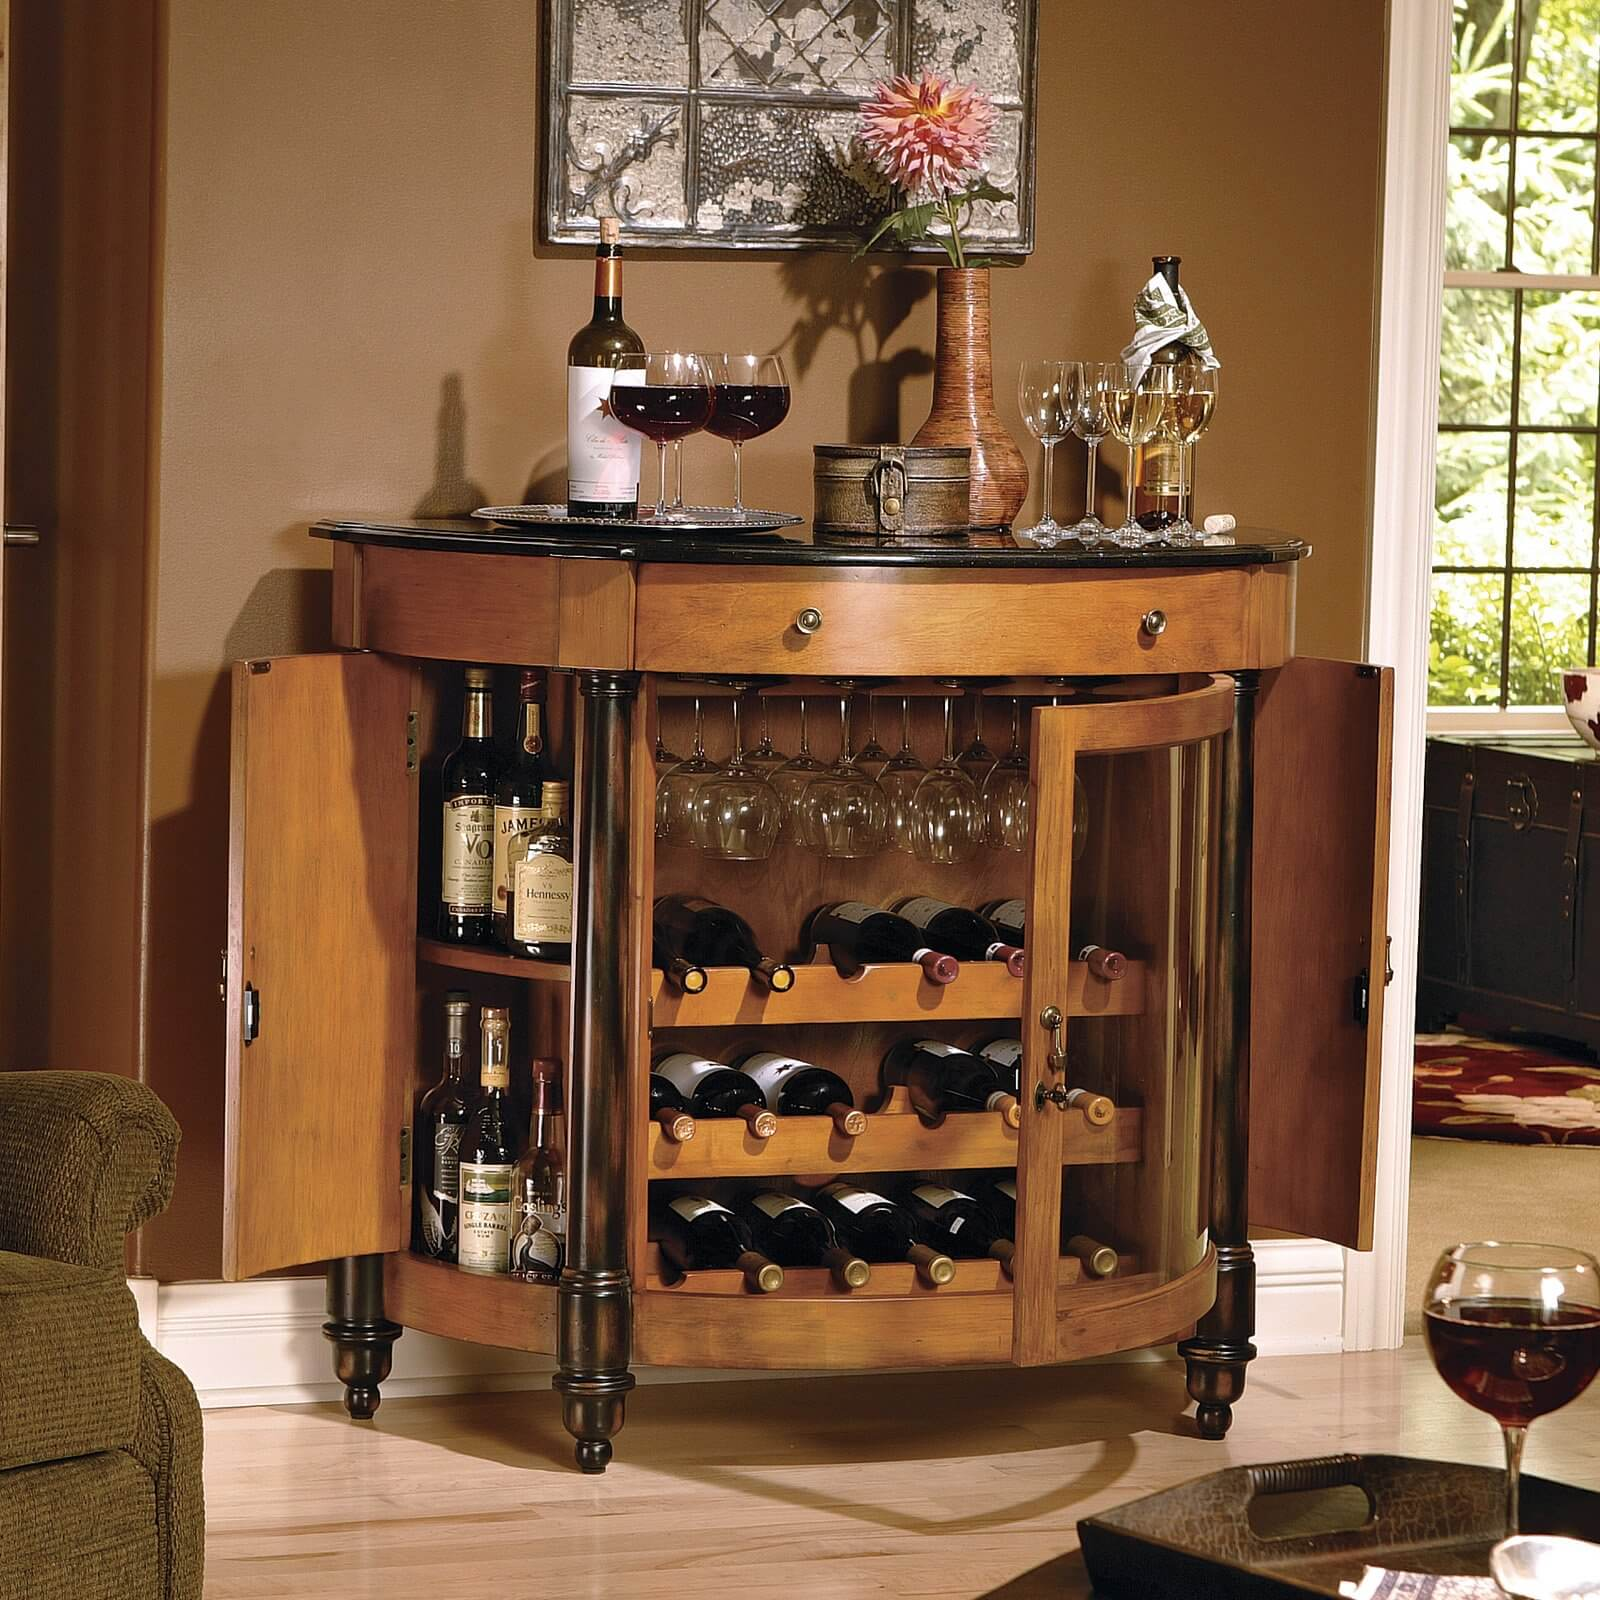 Hereu0027s A Home Bar For Wine Lovers With Itu0027s 18 Bottle Wine Rack.